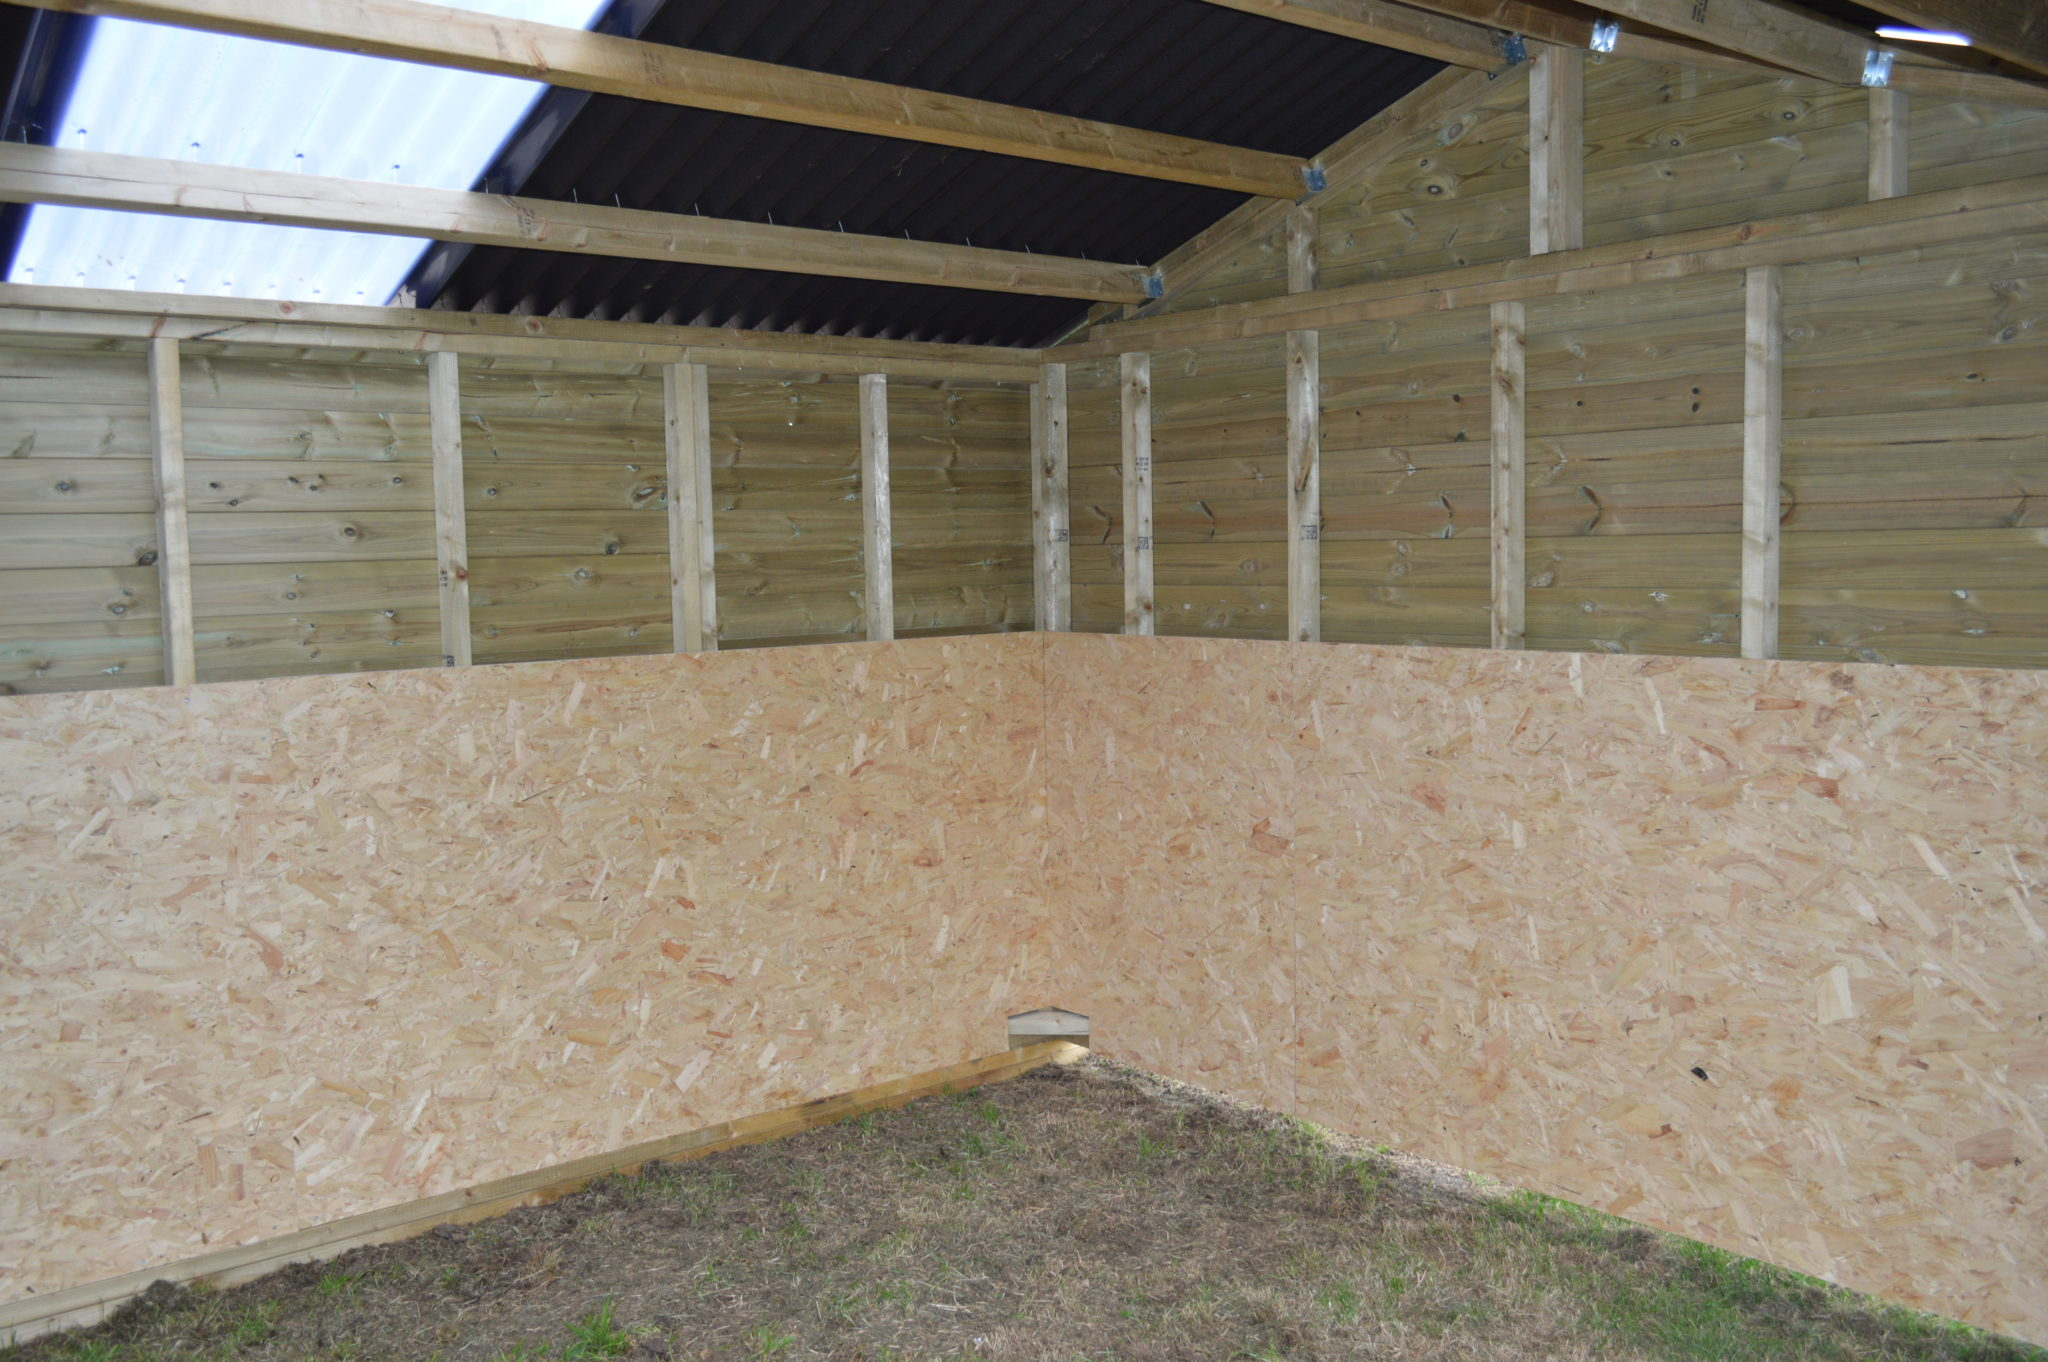 Internal view of Mobile Shelter with OSB kickboarding